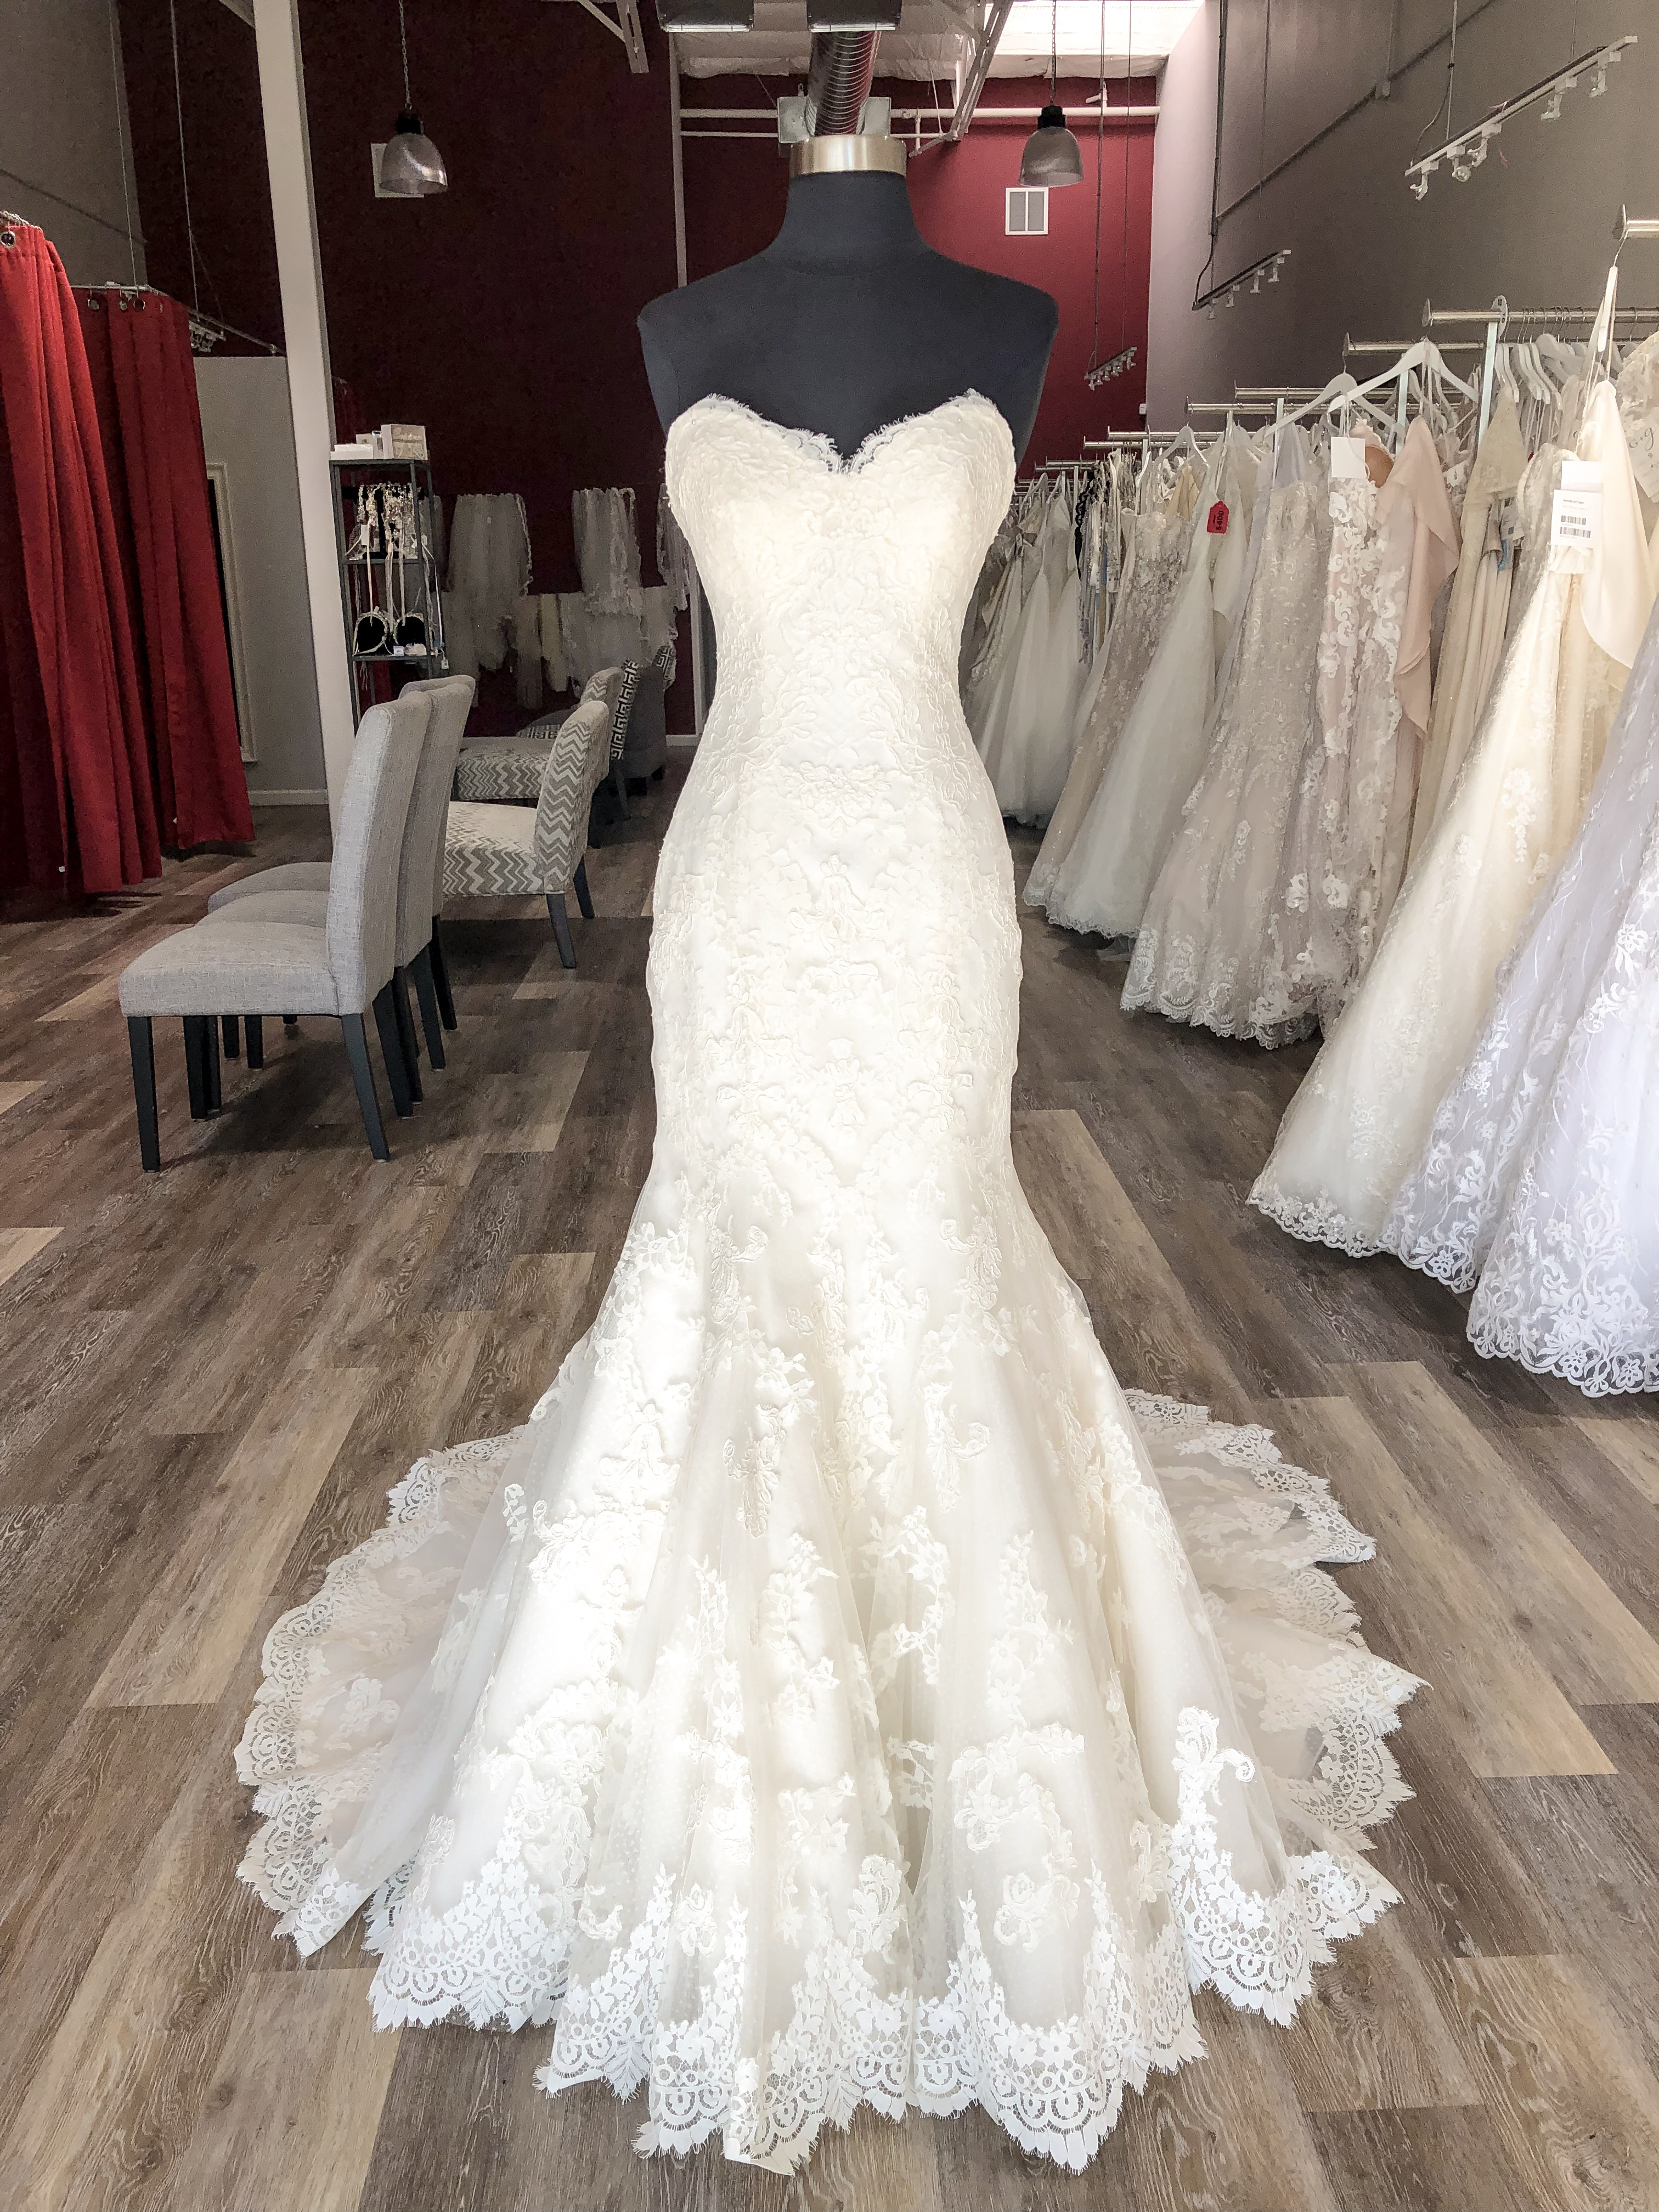 maggie sottero wedding dresses off the rack bridal store